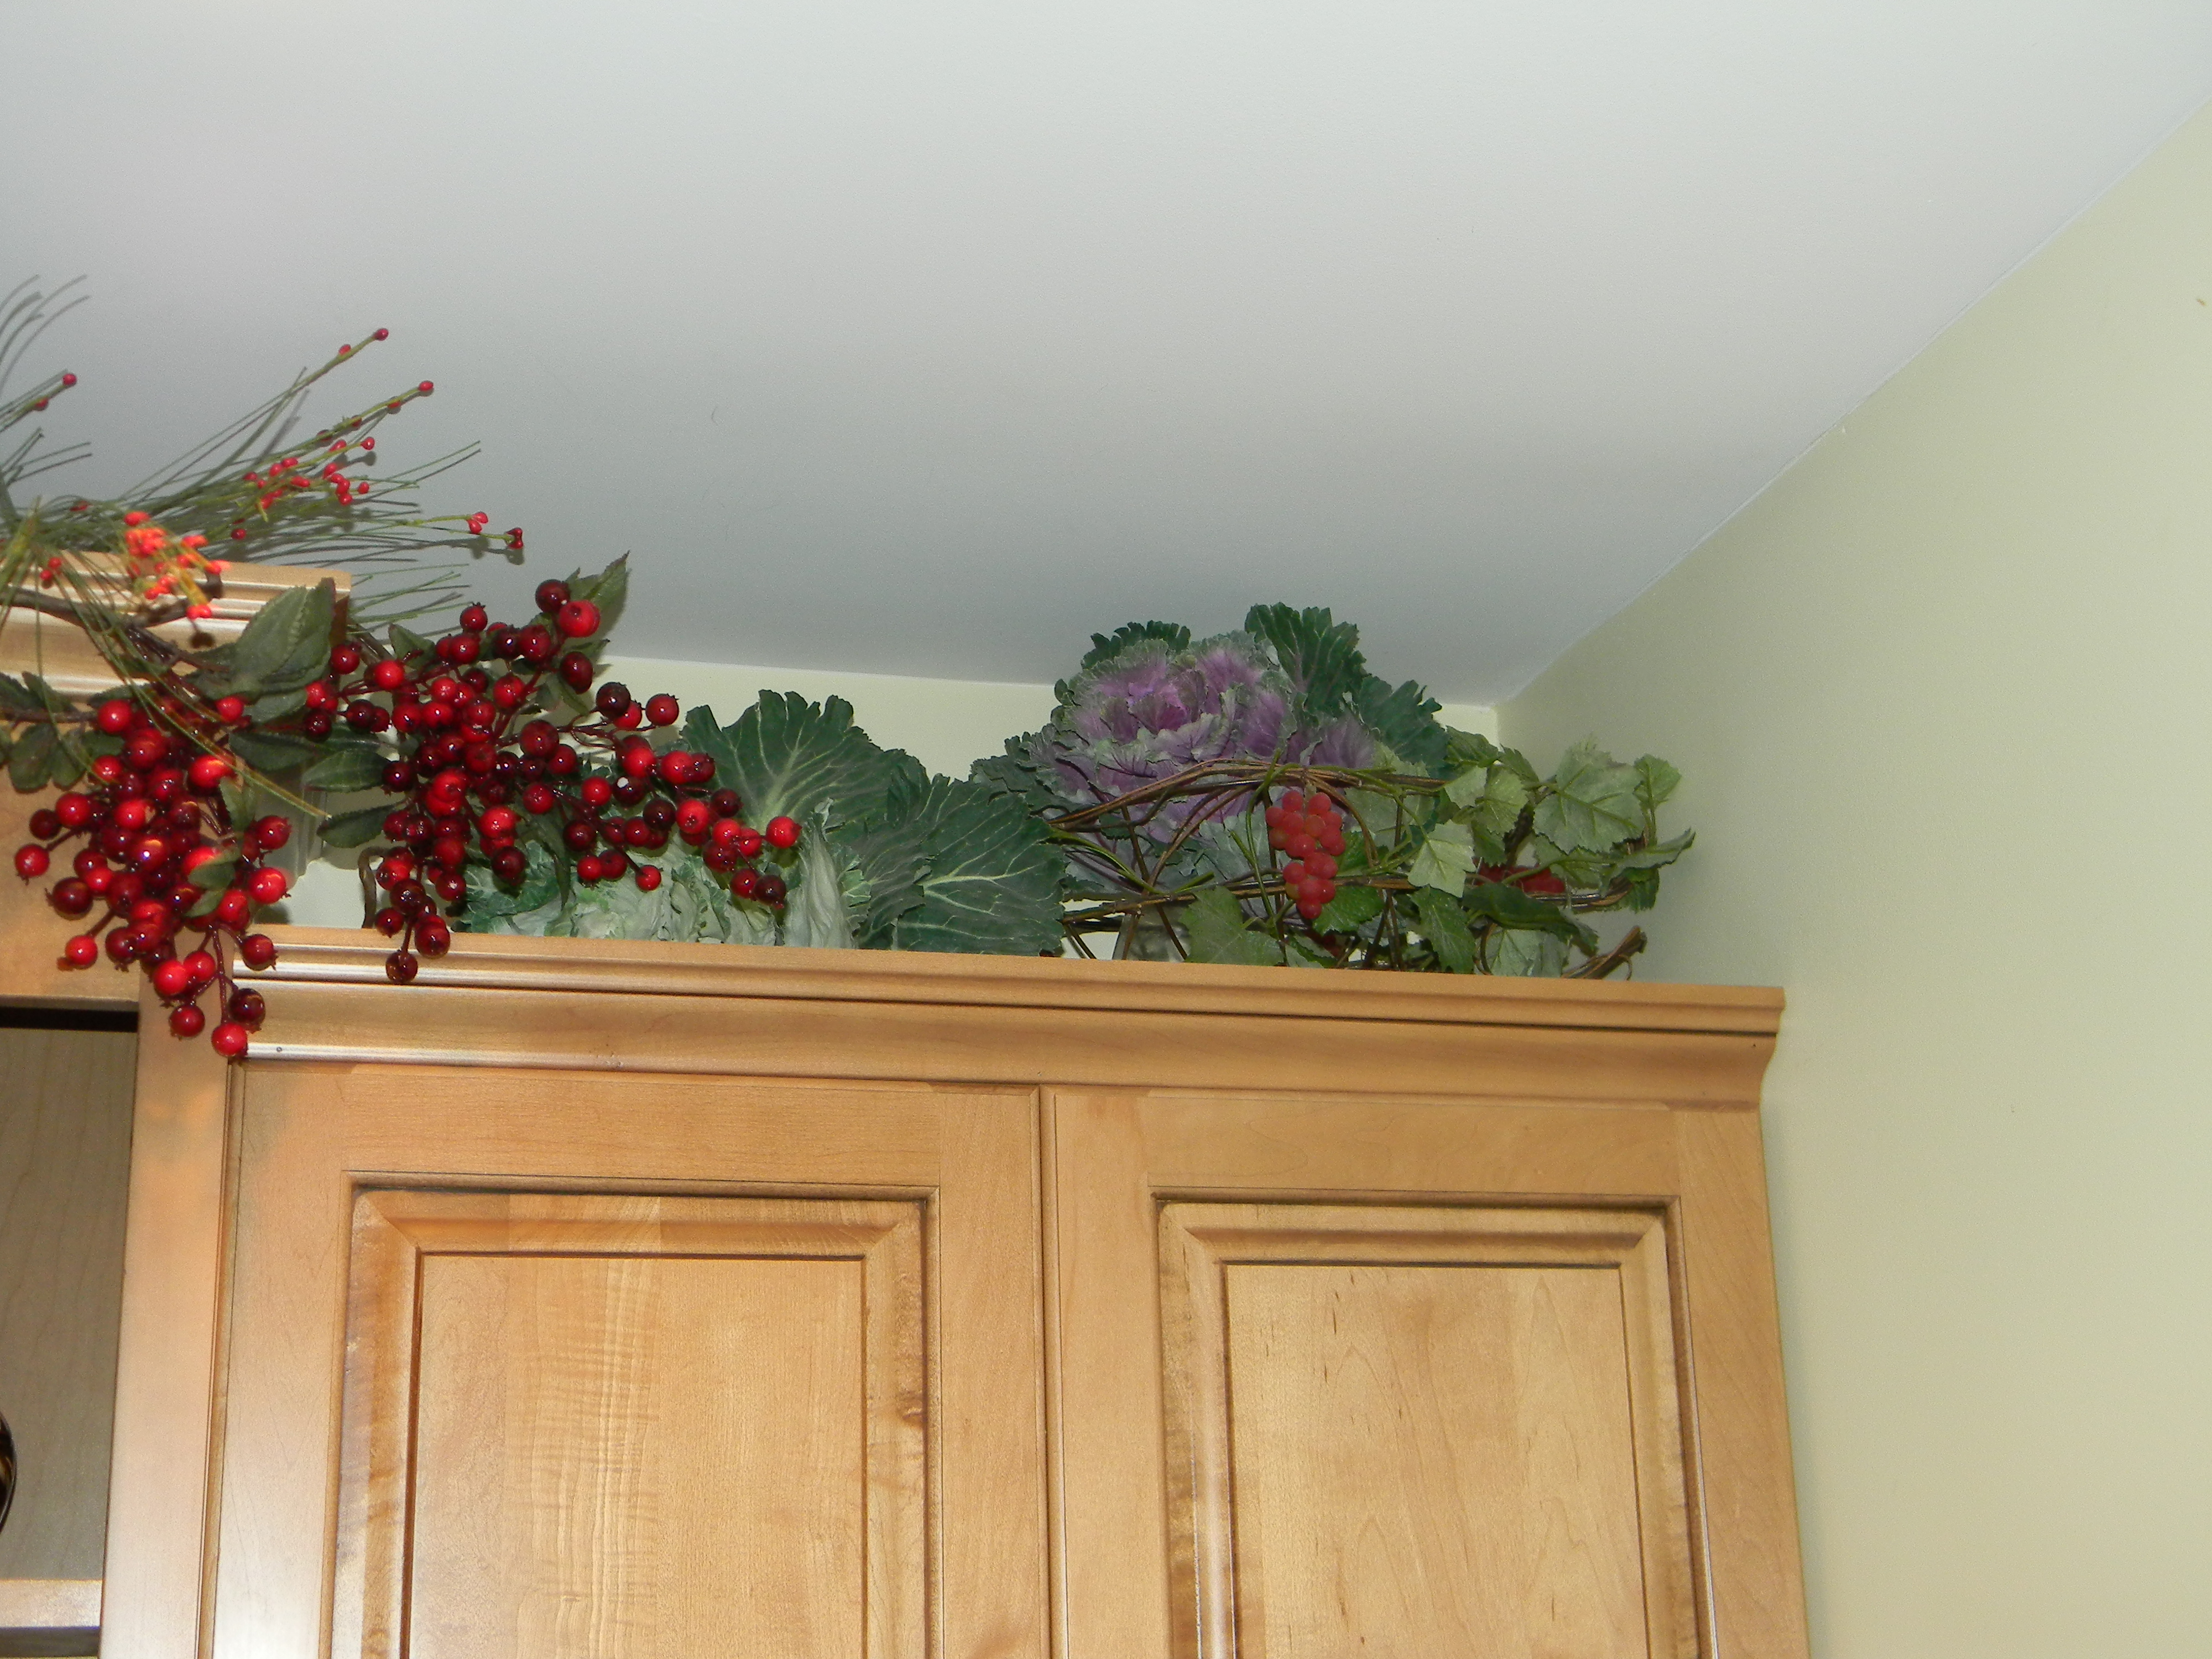 Decorate Above Kitchen Cabinets Html on decorating top of kitchen cabinets, glazed kitchen cabinets, small kitchen ideas with oak cabinets, decorate above shelves, ways to decorate kitchen cabinets, decorate above kitchen counters, decorate above fireplaces, decorate above bookshelves, decorating with plates above cabinets, decorate above kitchen sink, decorate above doors,